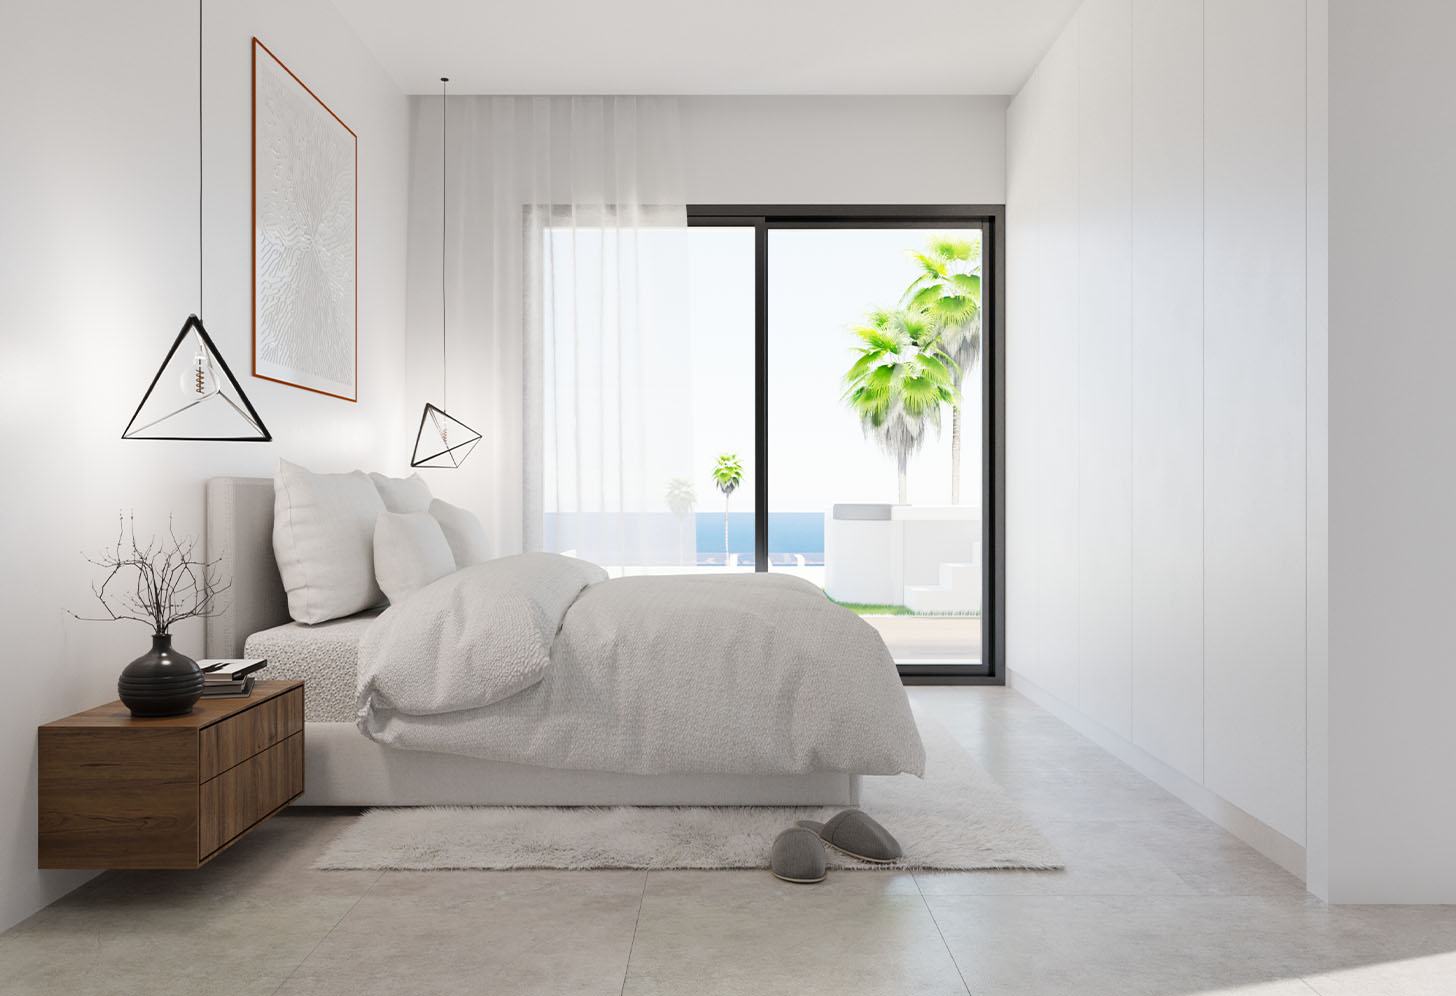 immobilier neuf espagne costa blanca on-j1 iconic chambre